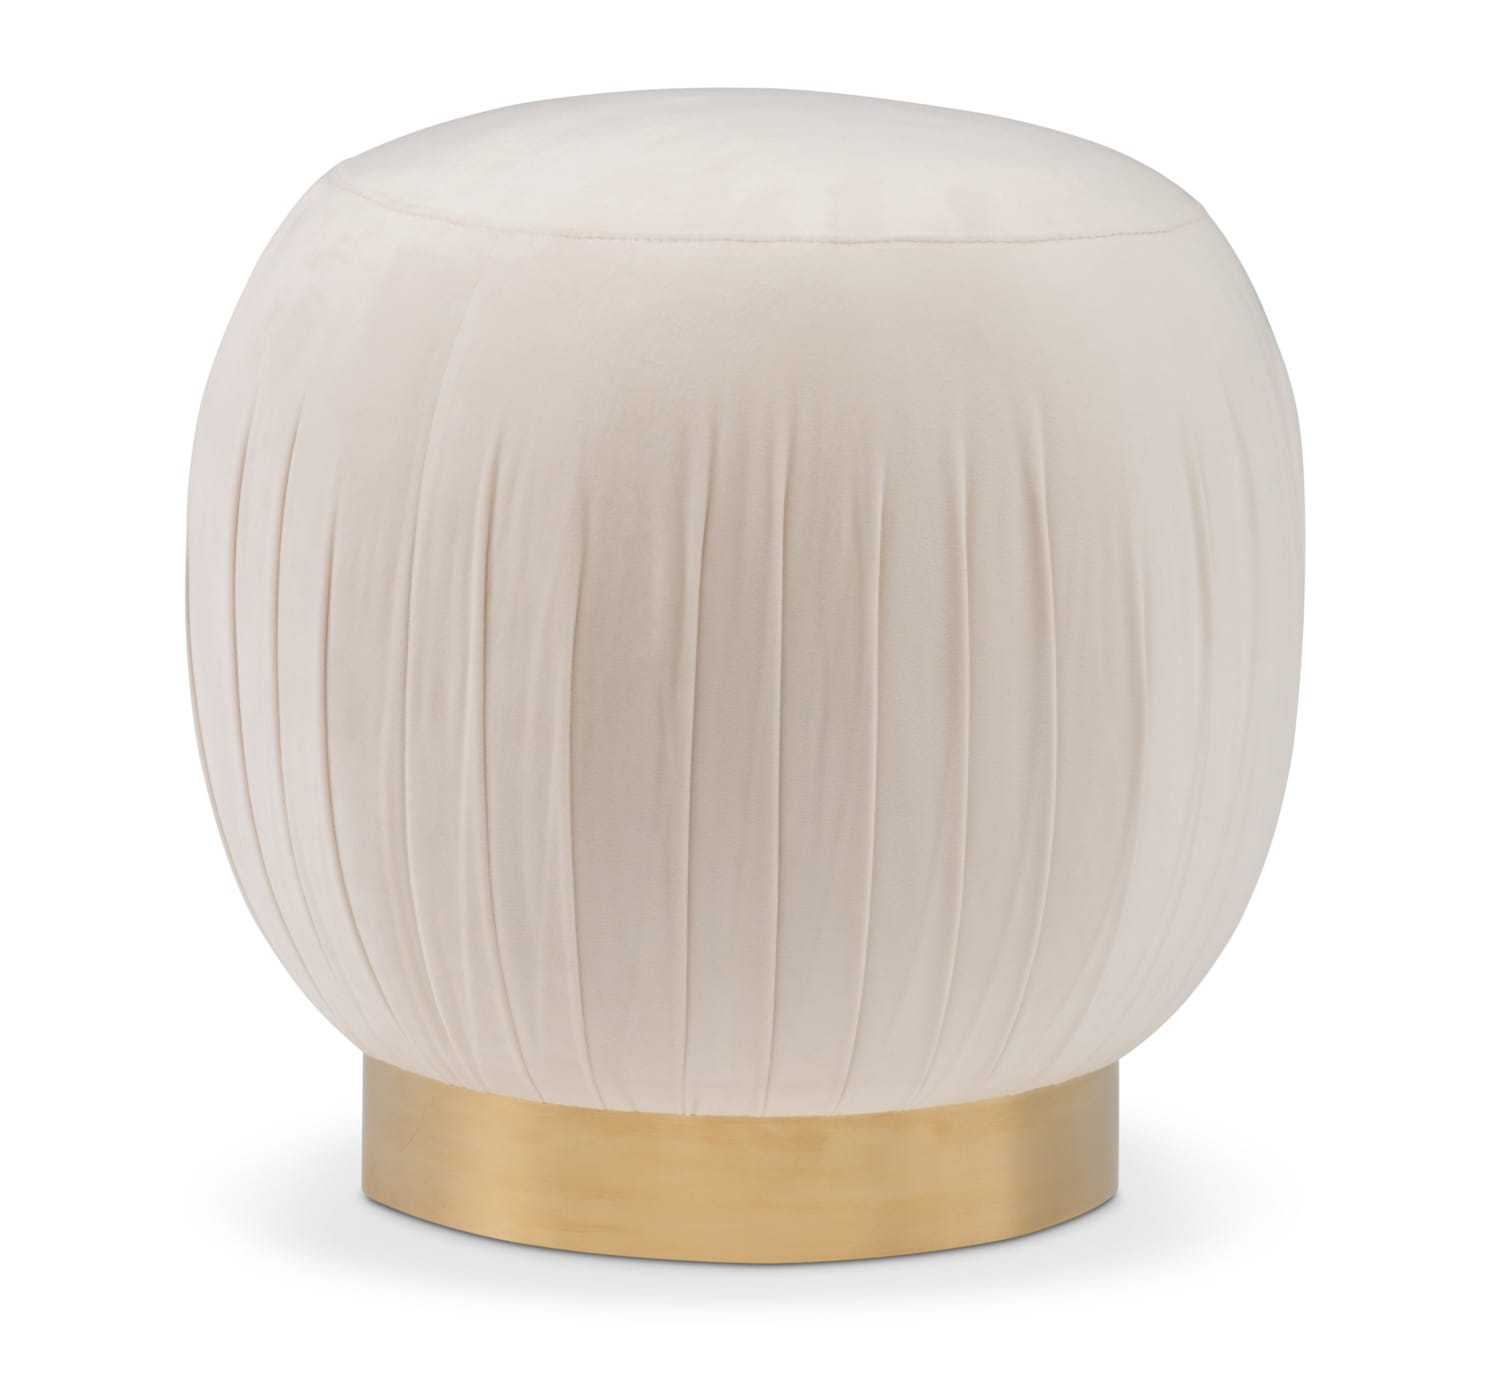 Bedroom Furniture - TOV Bright Eyed Ottoman - White